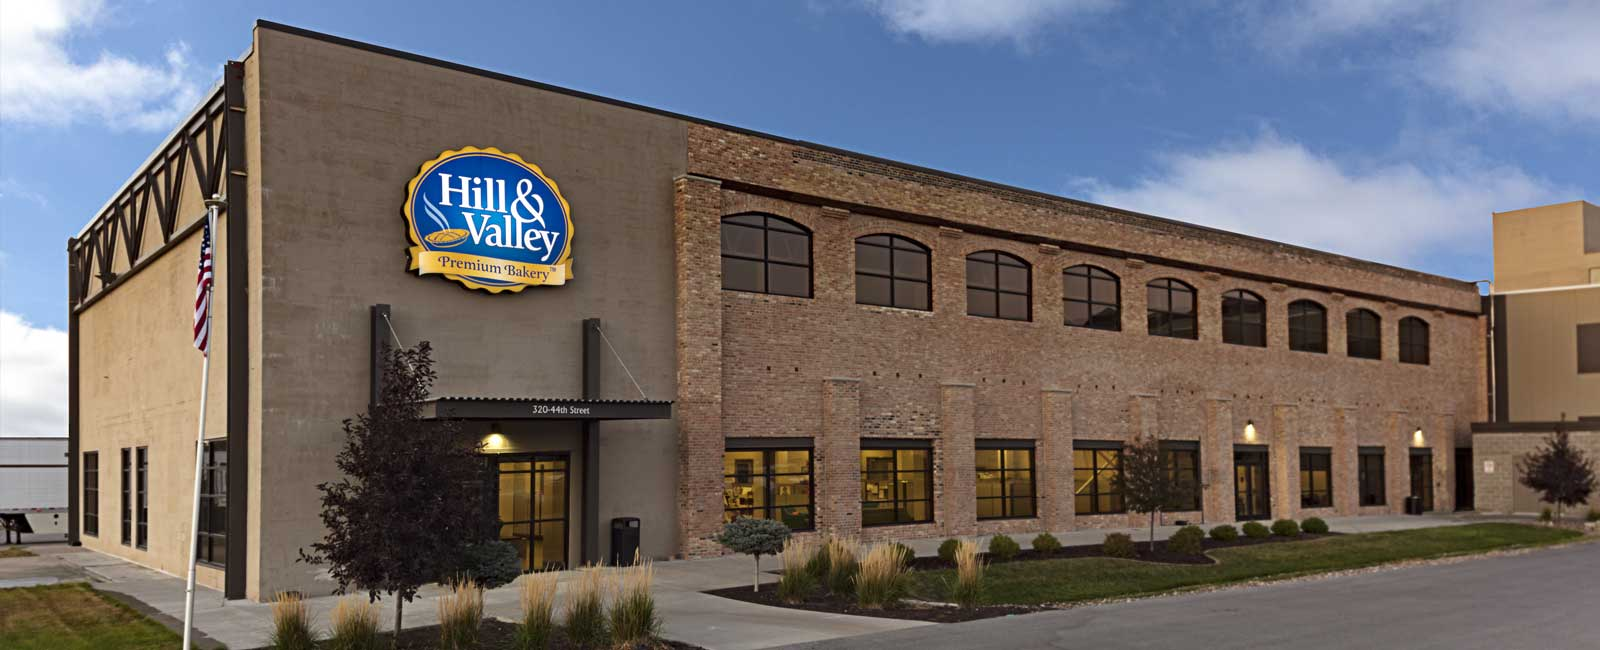 Hill & Valley Premium Bakery